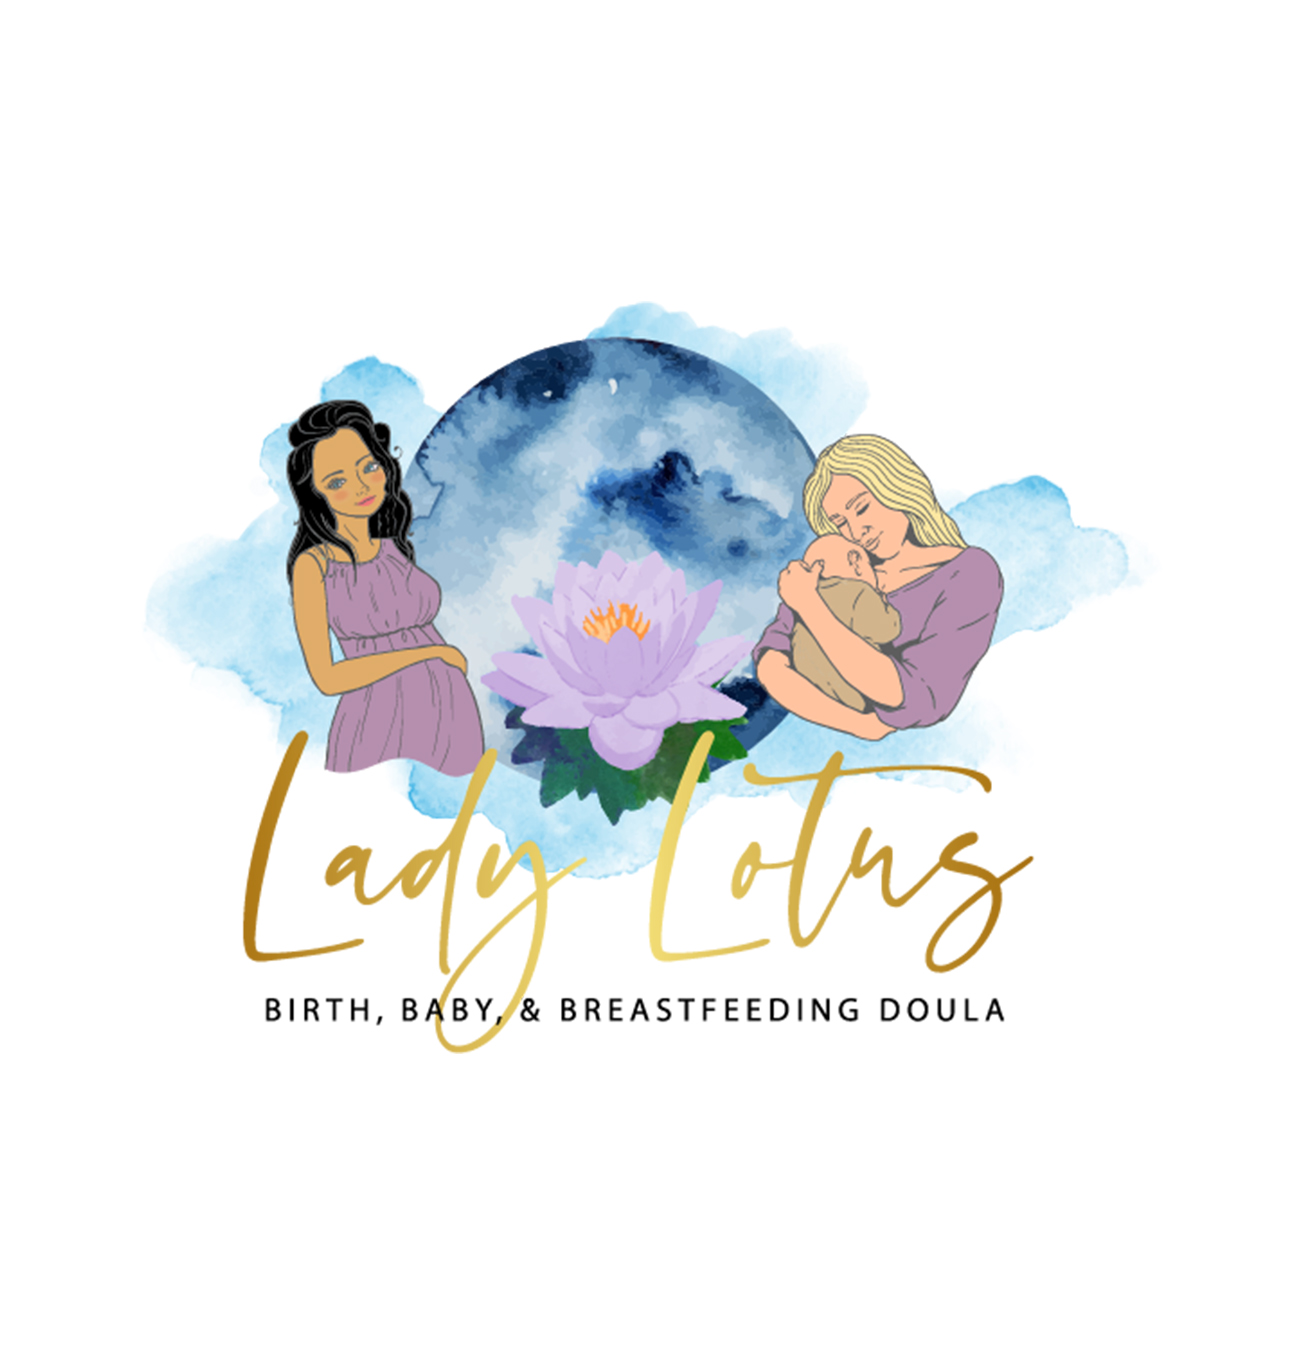 Lady Lotus Birth Baby & Breastfeeding Doula